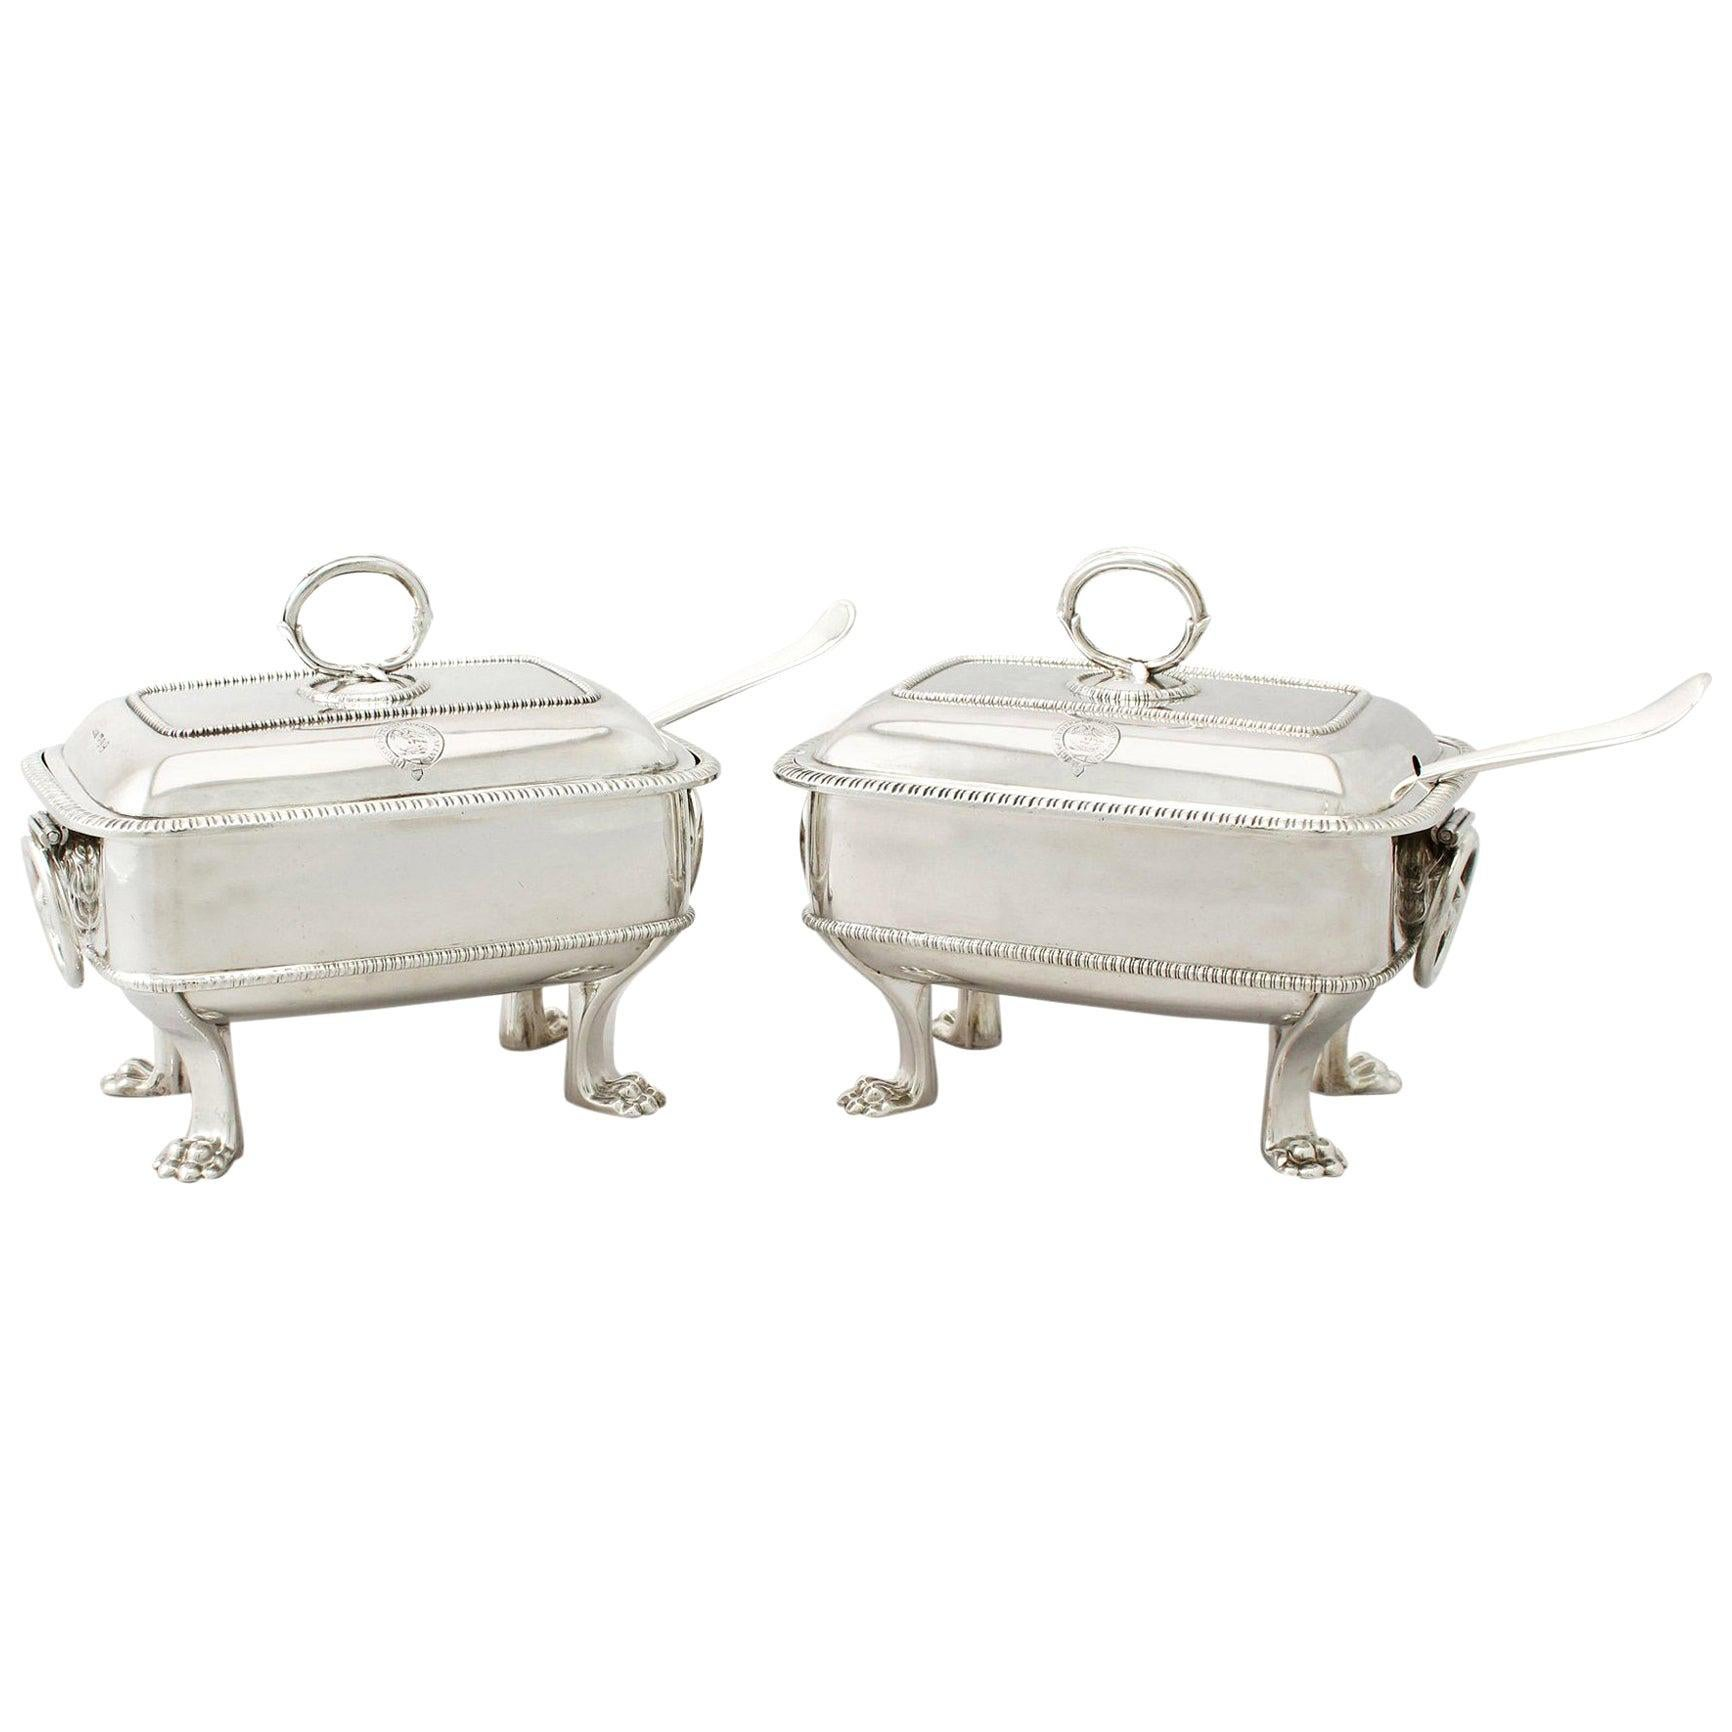 Antique Georgian English Sterling Silver Sauce Tureens with Ladles